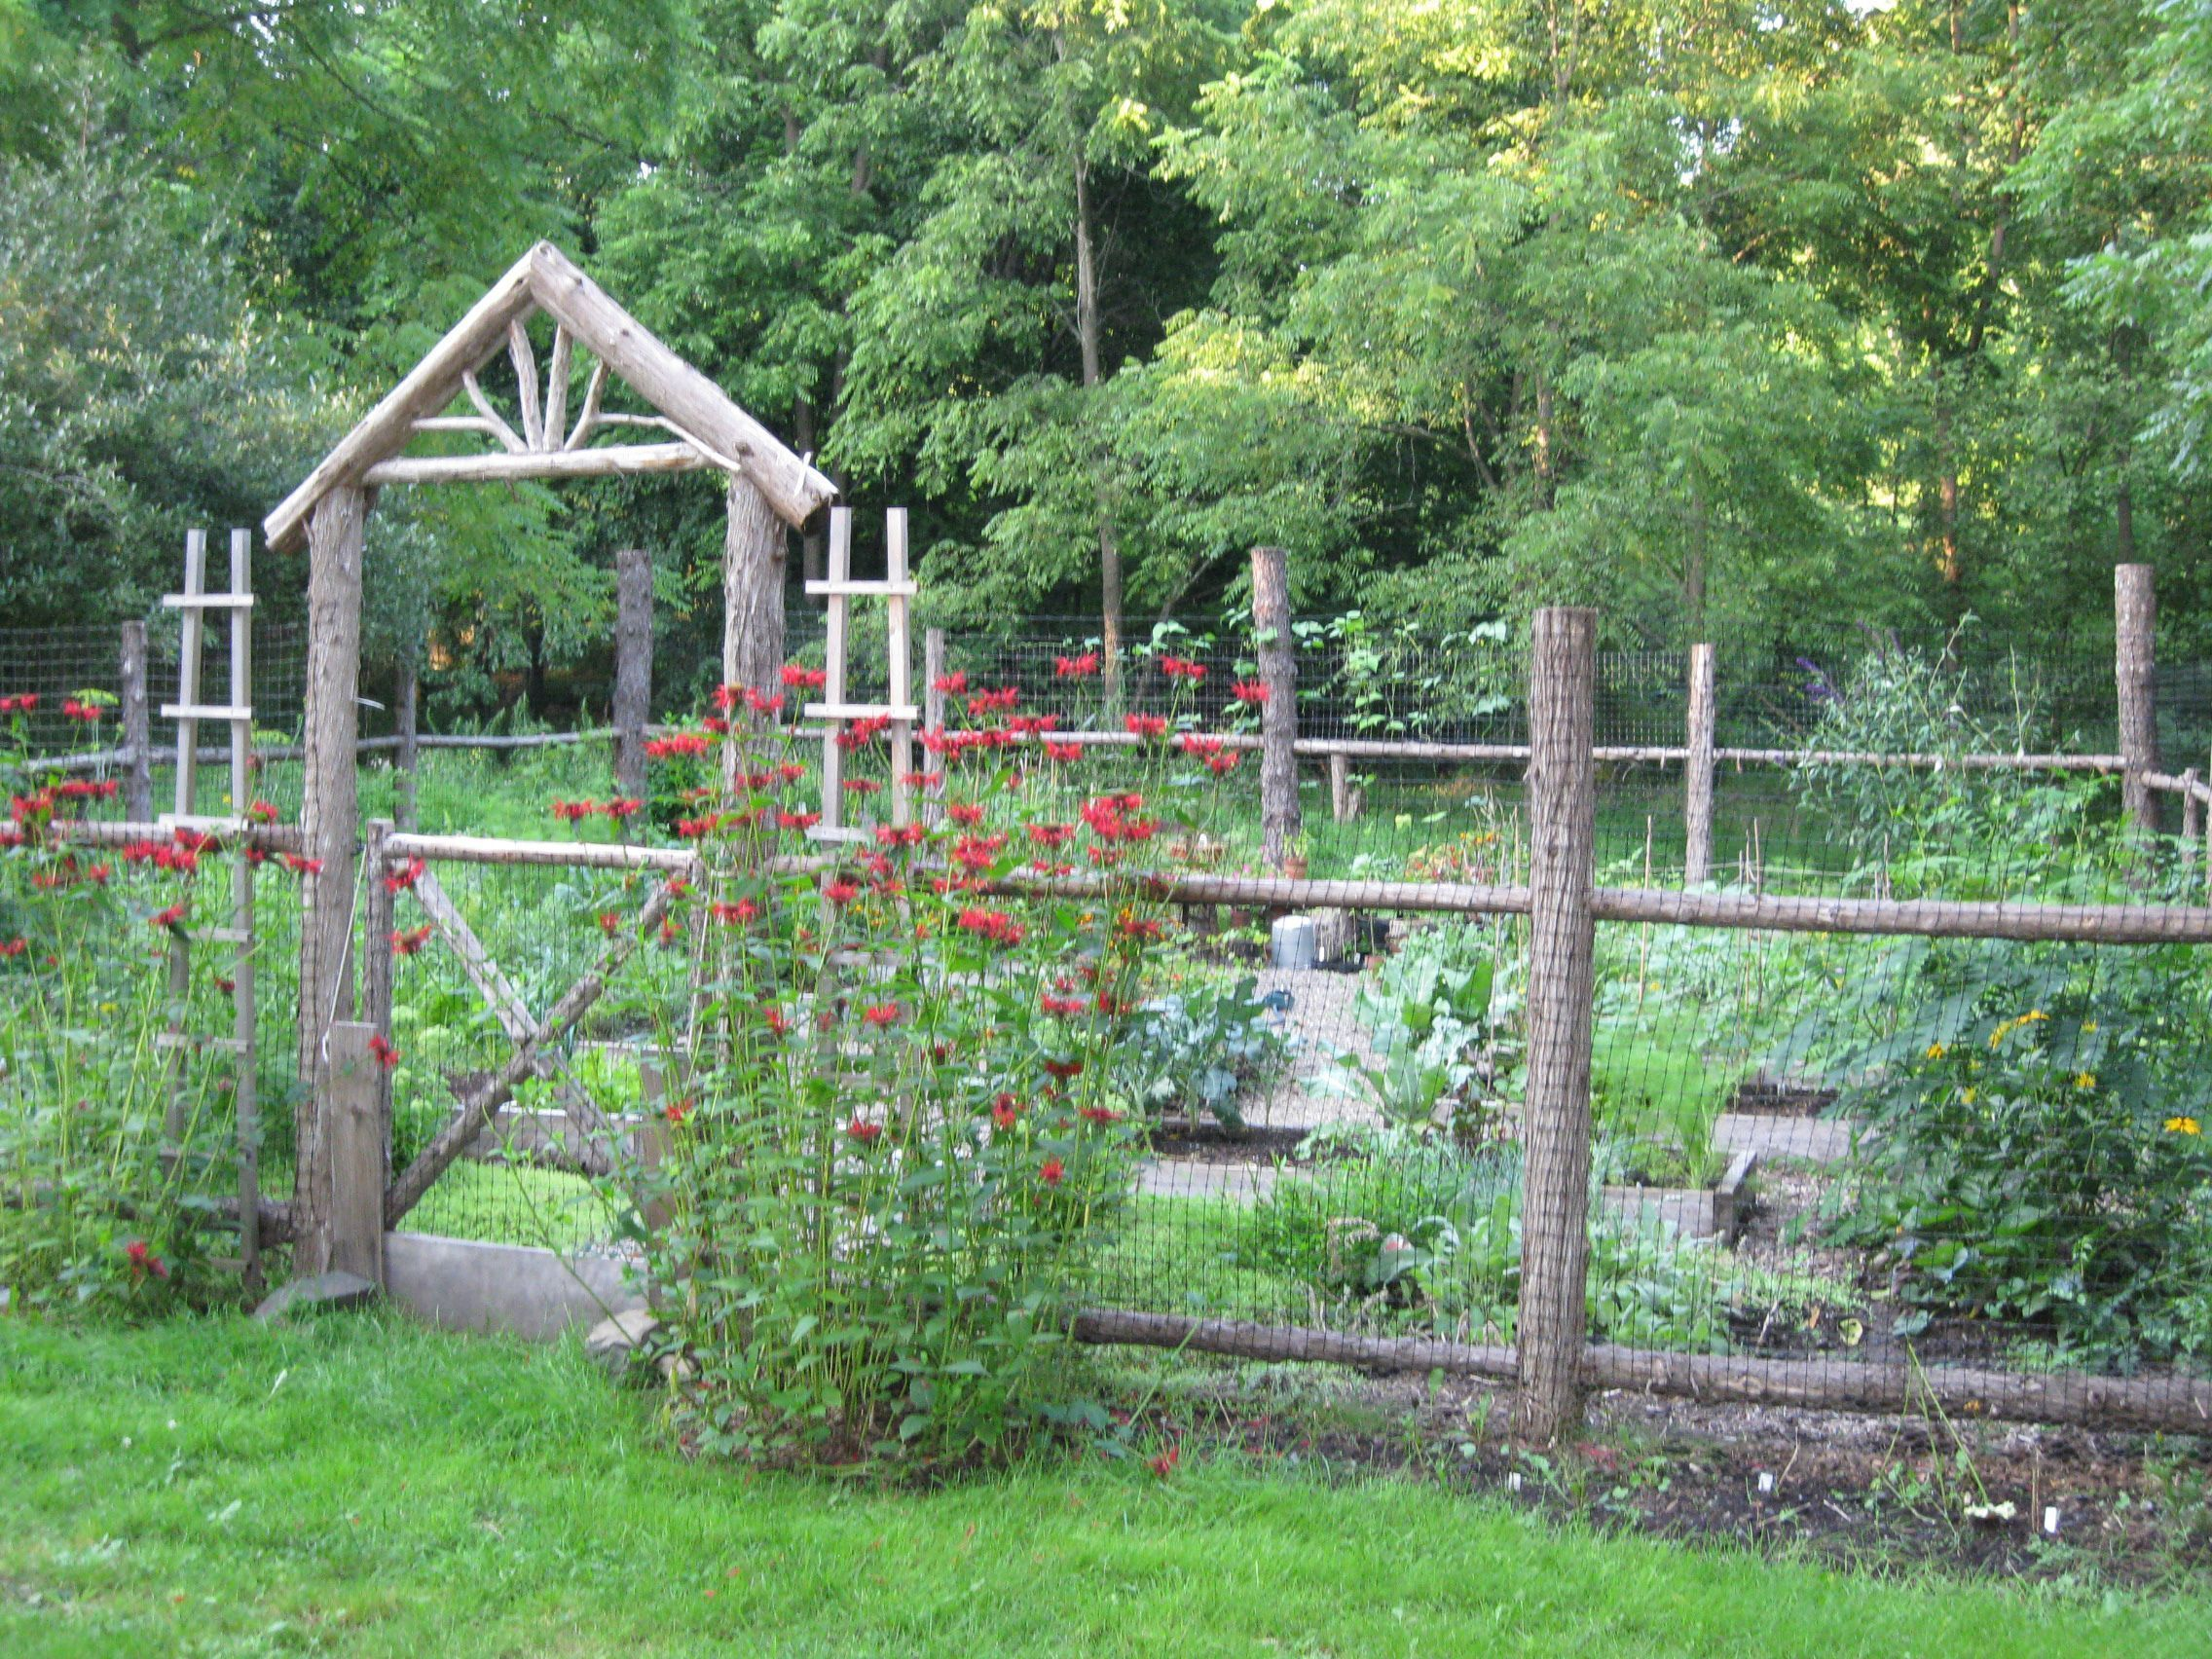 Rabbit Proof Your Garden With A Decorative Fence Like This